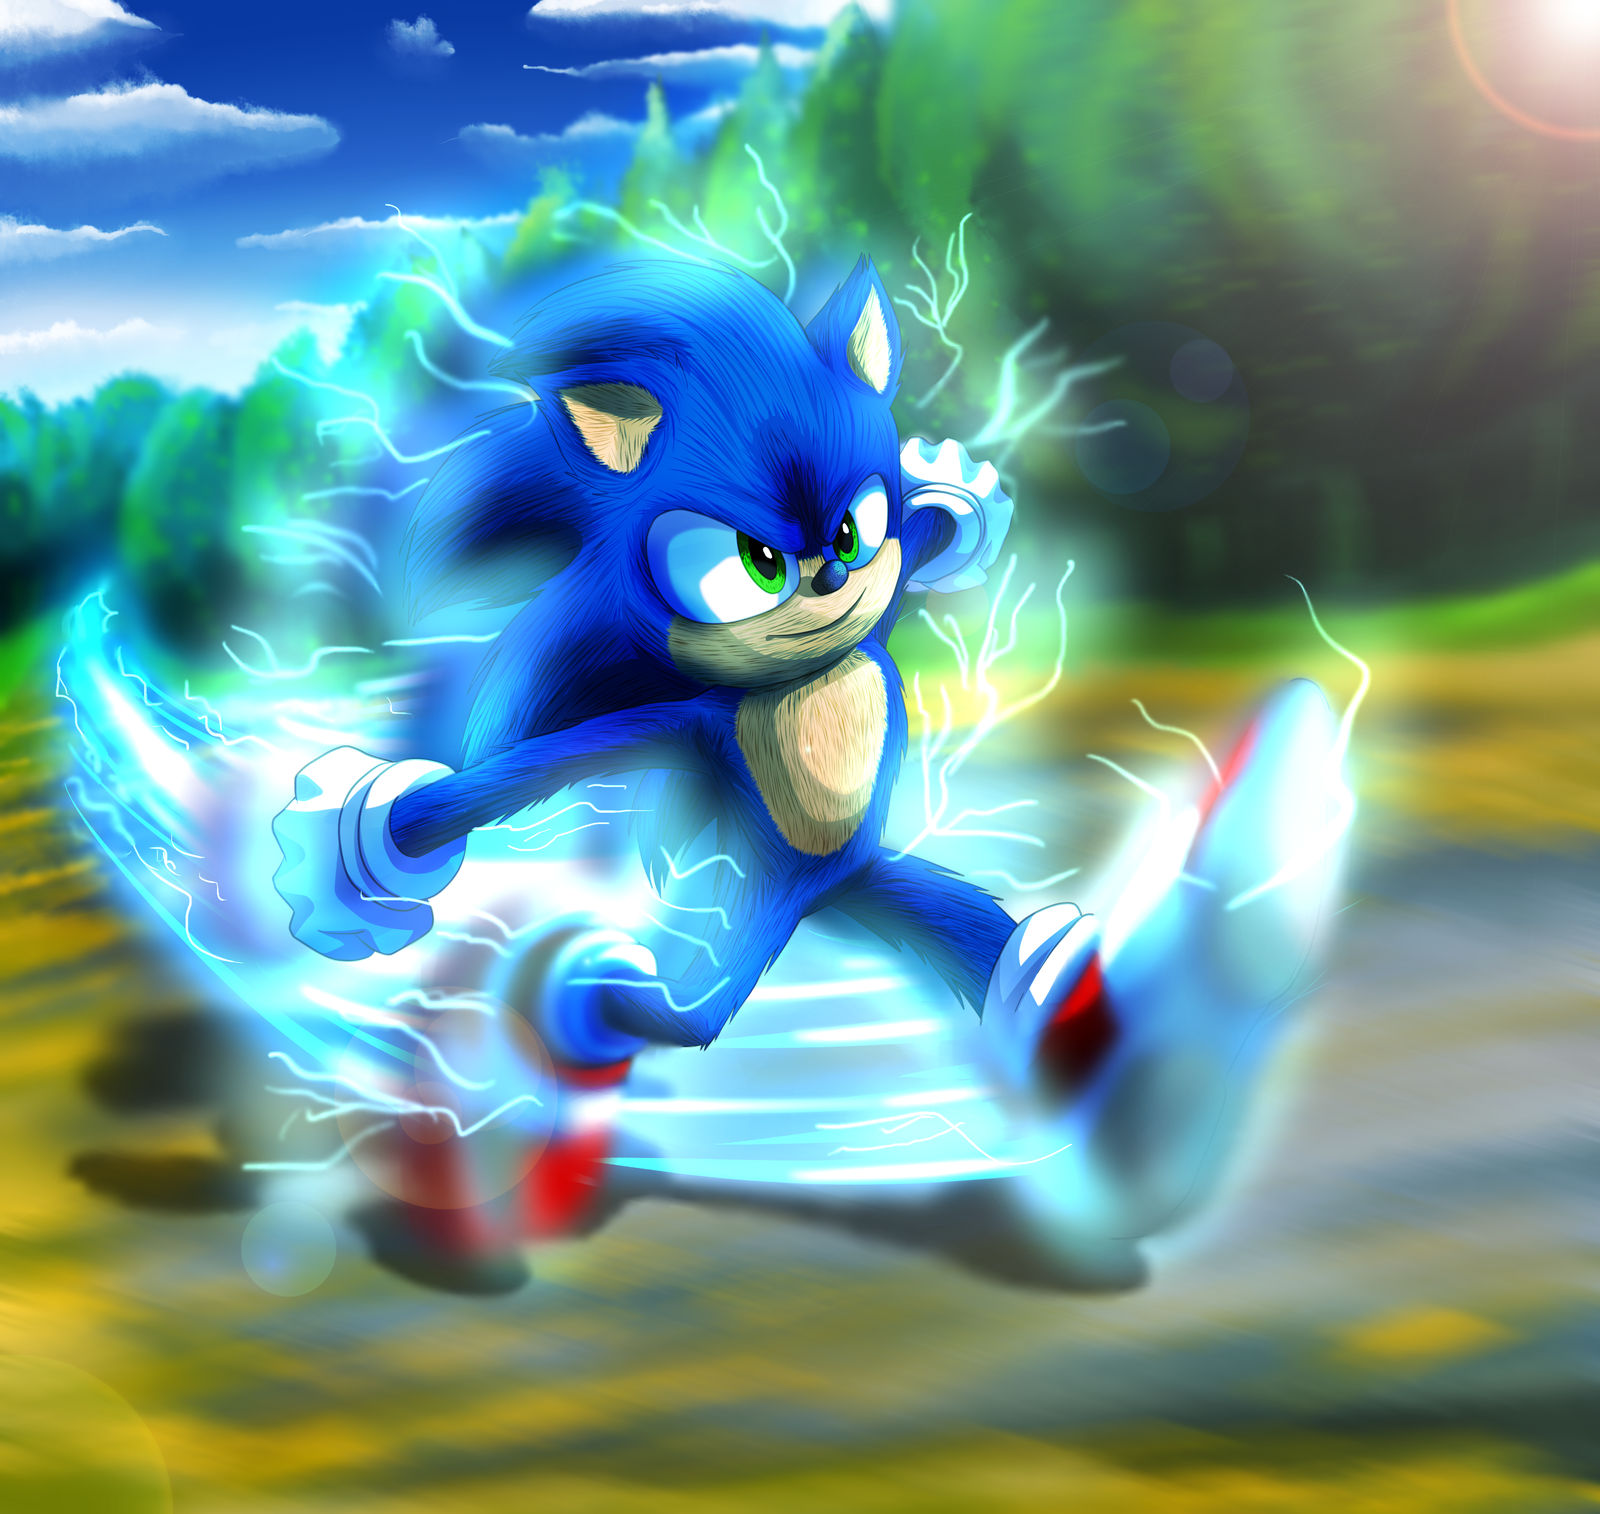 Sonic Movie 2020 By Gcgblacknigth On Deviantart